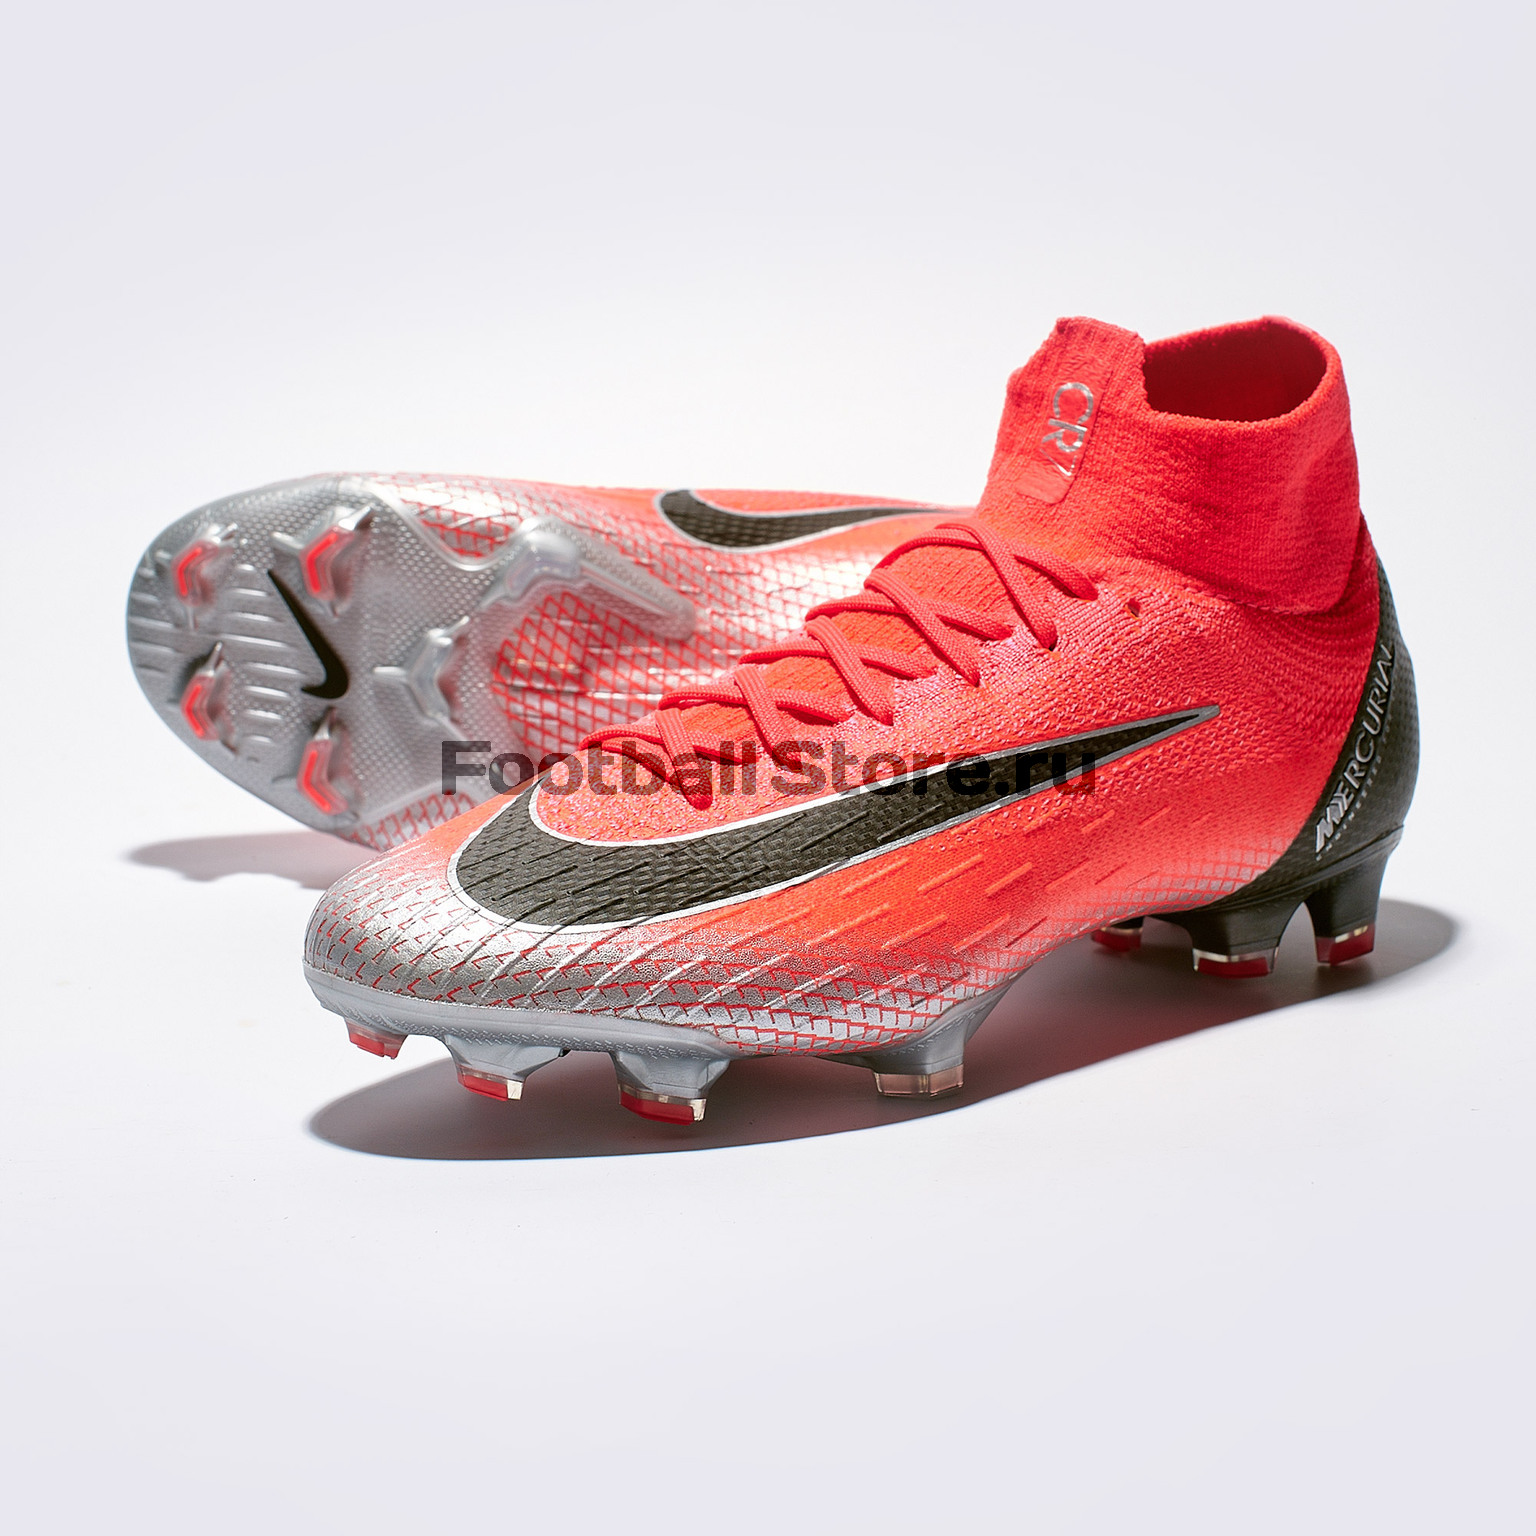 Бутсы Nike Superfly 6 Elite CR7 FG AJ3547-600 бутсы nike mercurial vapor cr7 fg 684860 014